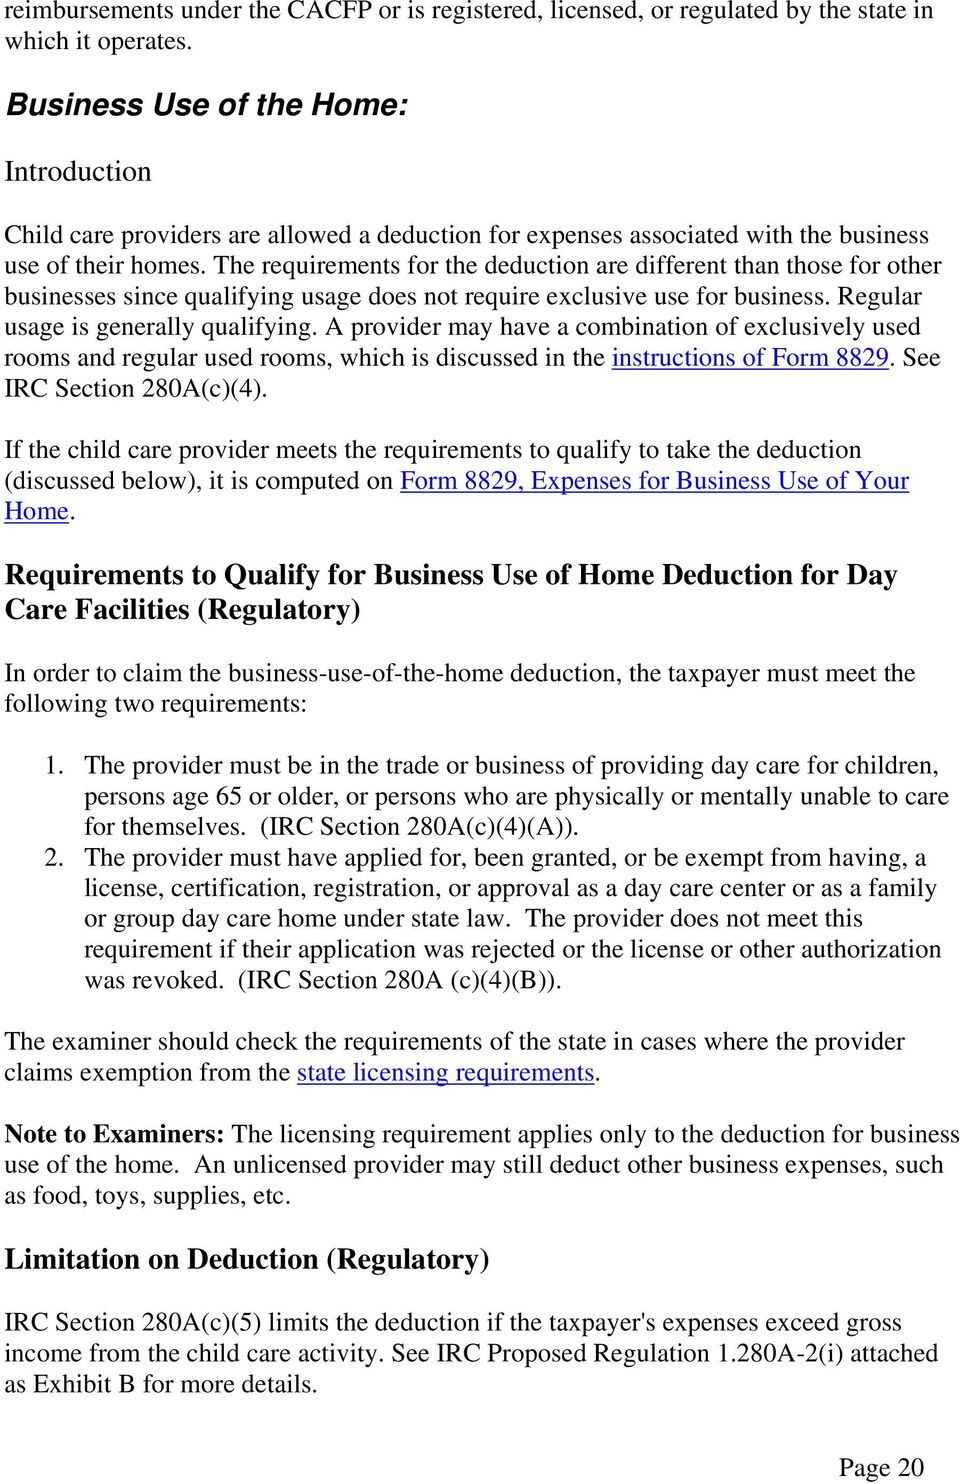 The requirements for the deduction are different than those for other businesses since qualifying usage does not require exclusive use for business. Regular usage is generally qualifying.